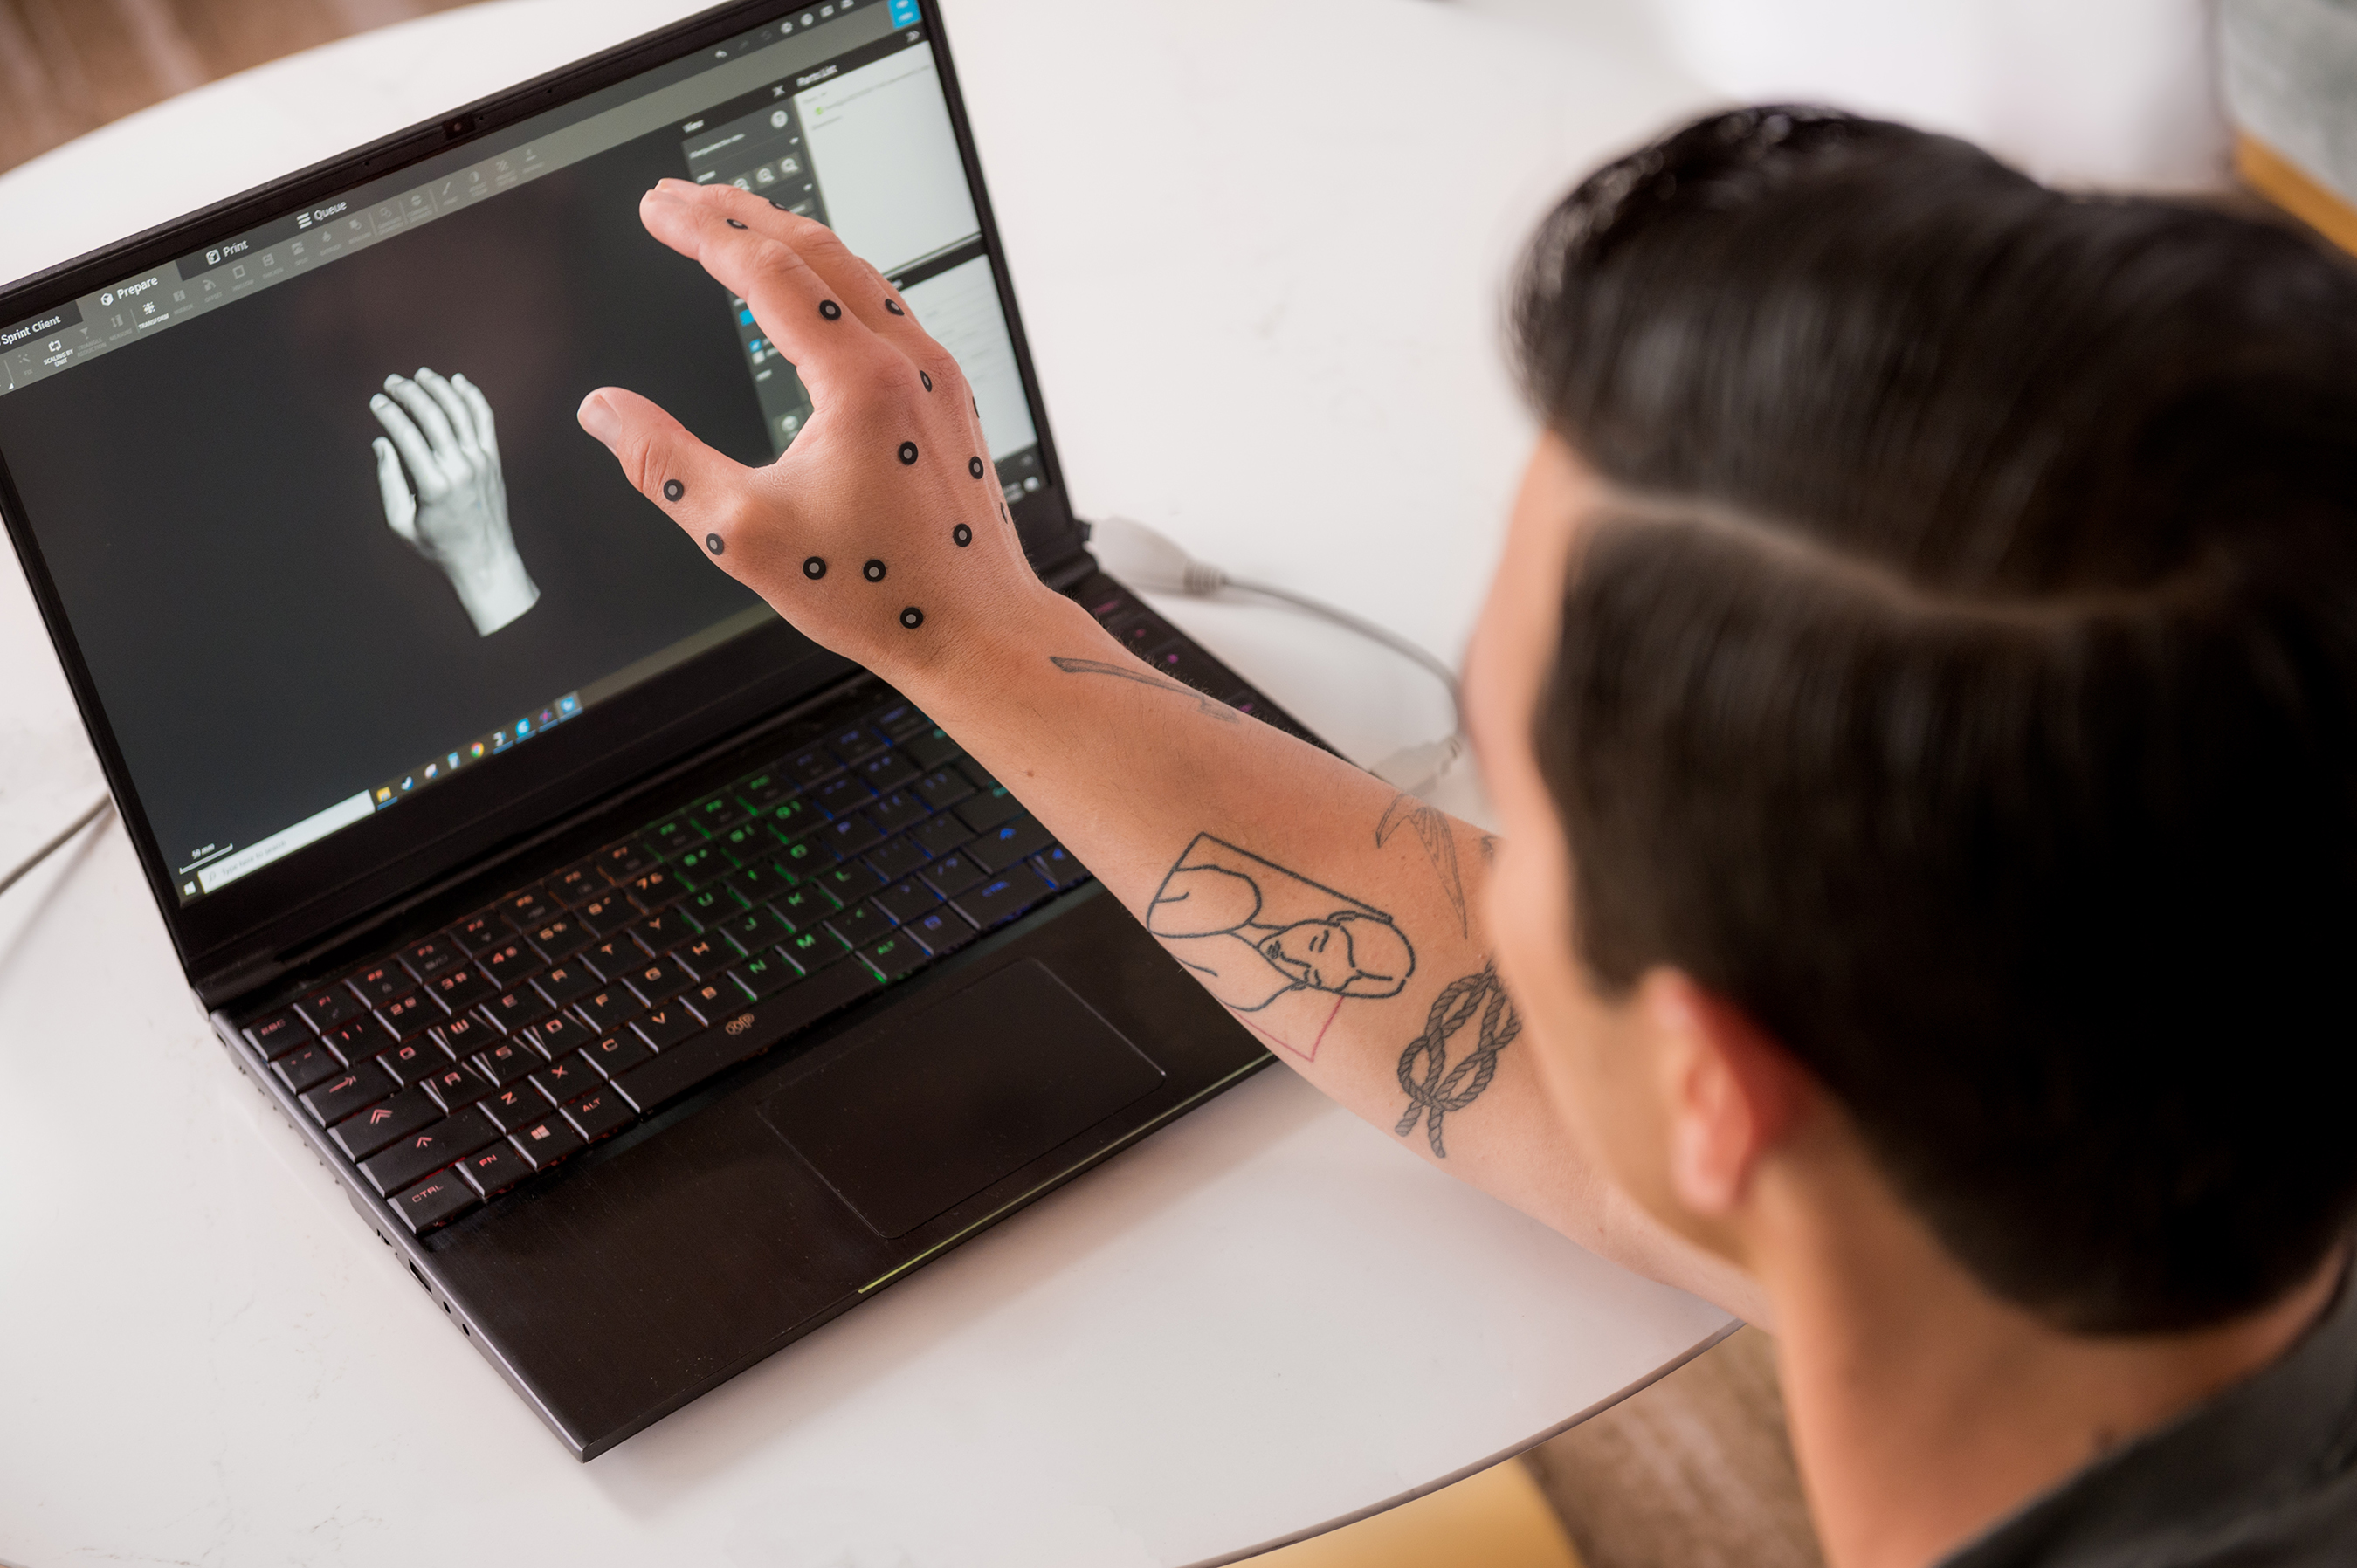 A perfect match - Joe Jonas checks out the accuracy of the replica scan of his hand, which will soon become the Expedia Helping Hand